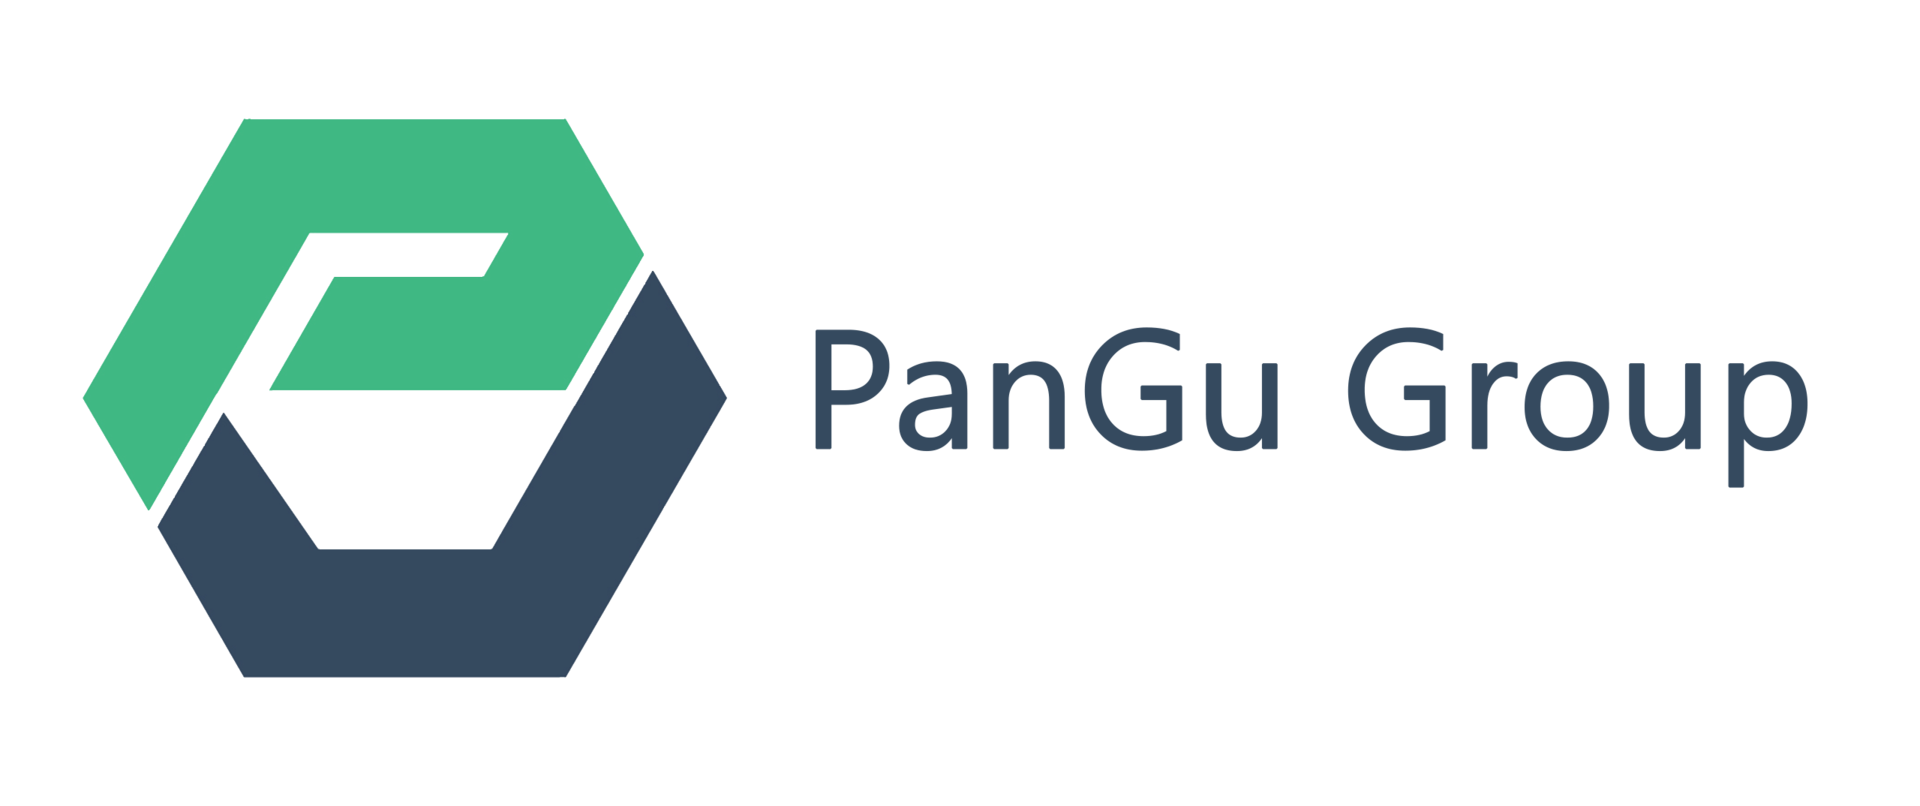 PanGu Group : changshu sino-enterprise petroleum co. ltd,  Qingdao Tiny Wuya international,   Qingdao Tiny Maque  international,